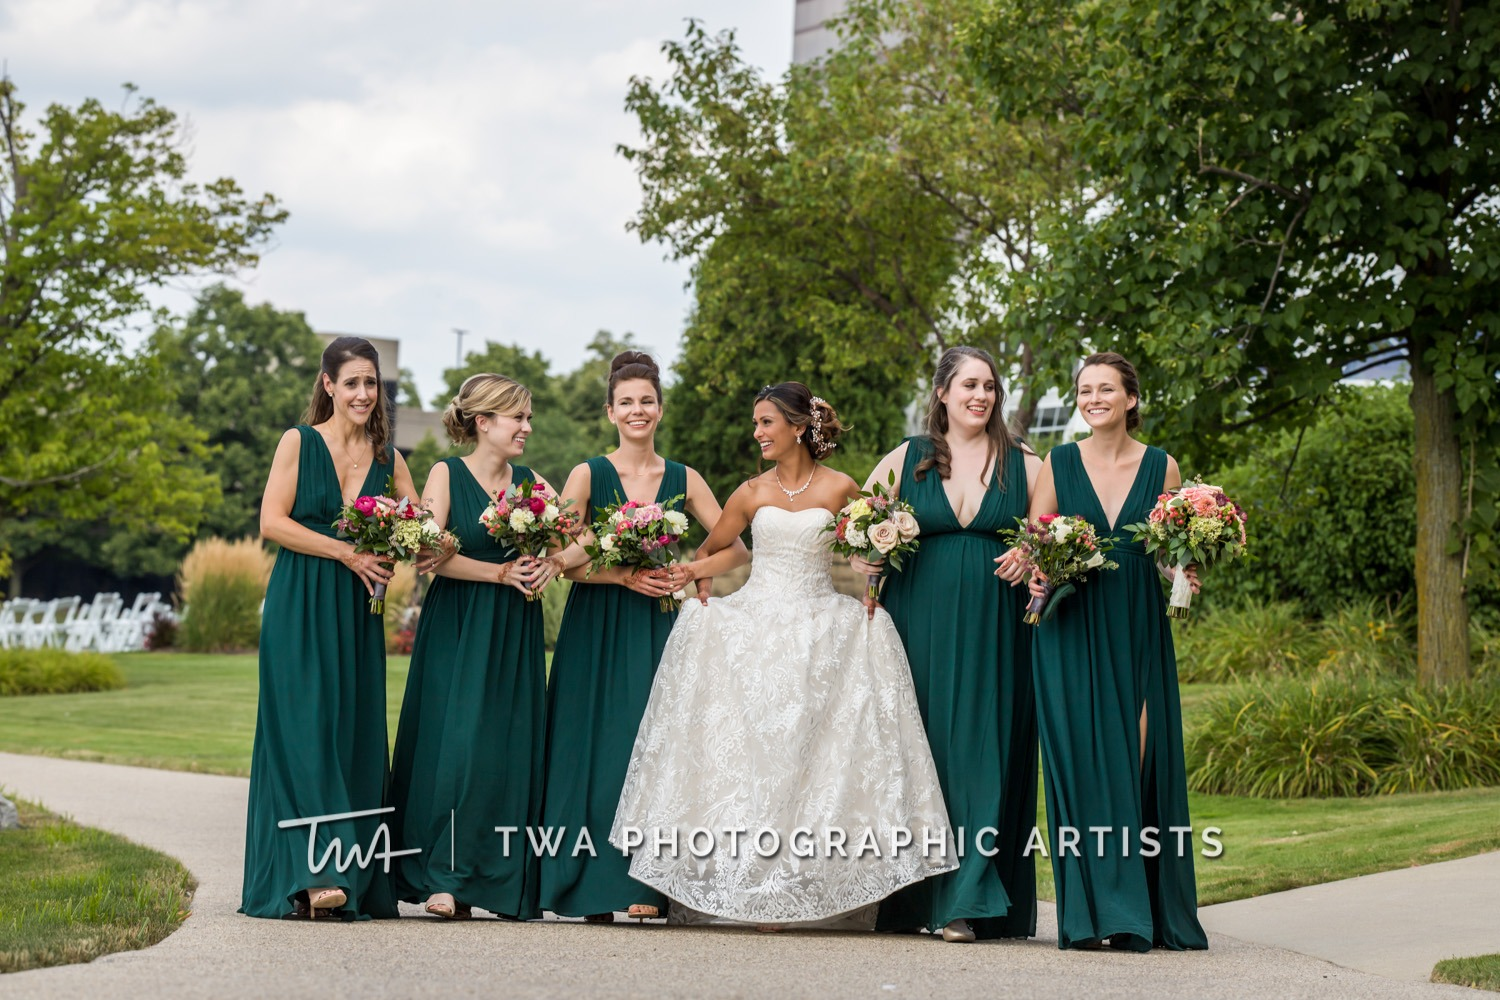 Chicago-Wedding-Photographer-TWA-Photographic-Artists-Shah_Billings_WM_TL-0507